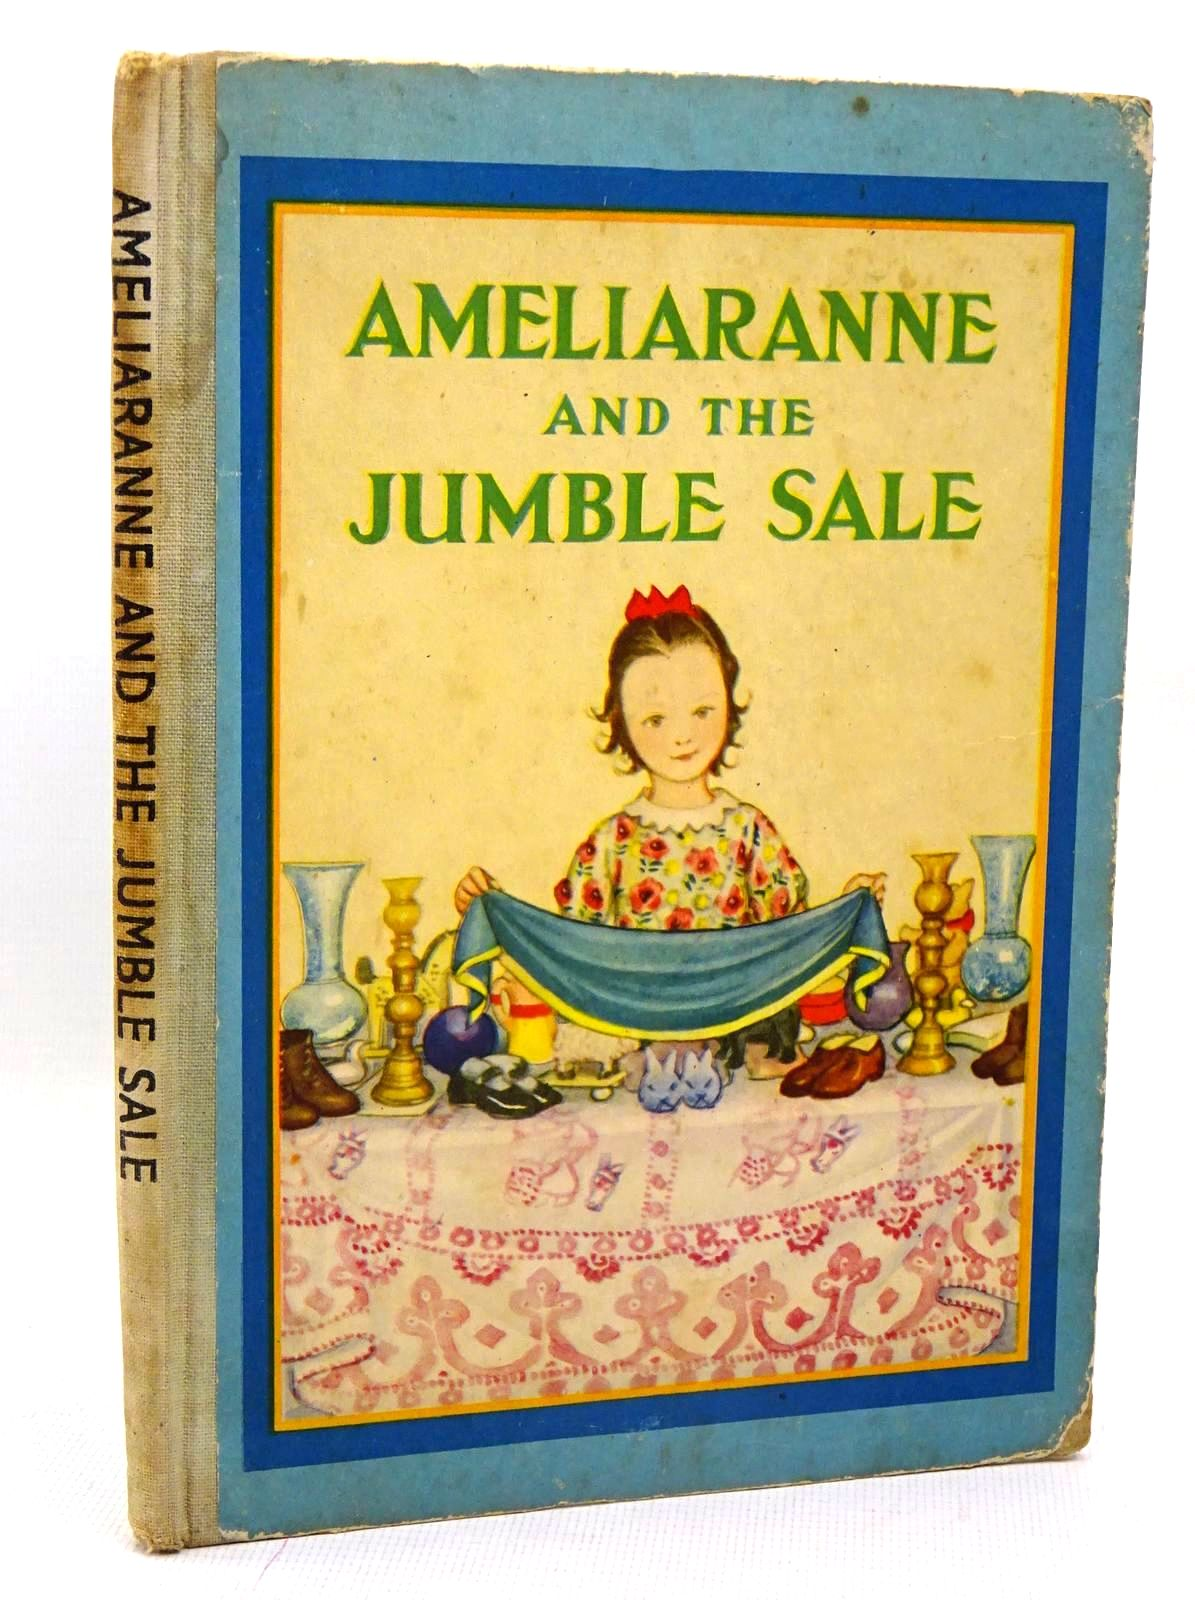 Photo of AMELIARANNE AND THE JUMBLE SALE written by Osborne, Eileen illustrated by Pearse, S.B. published by George G. Harrap & Co. Ltd. (STOCK CODE: 1317435)  for sale by Stella & Rose's Books